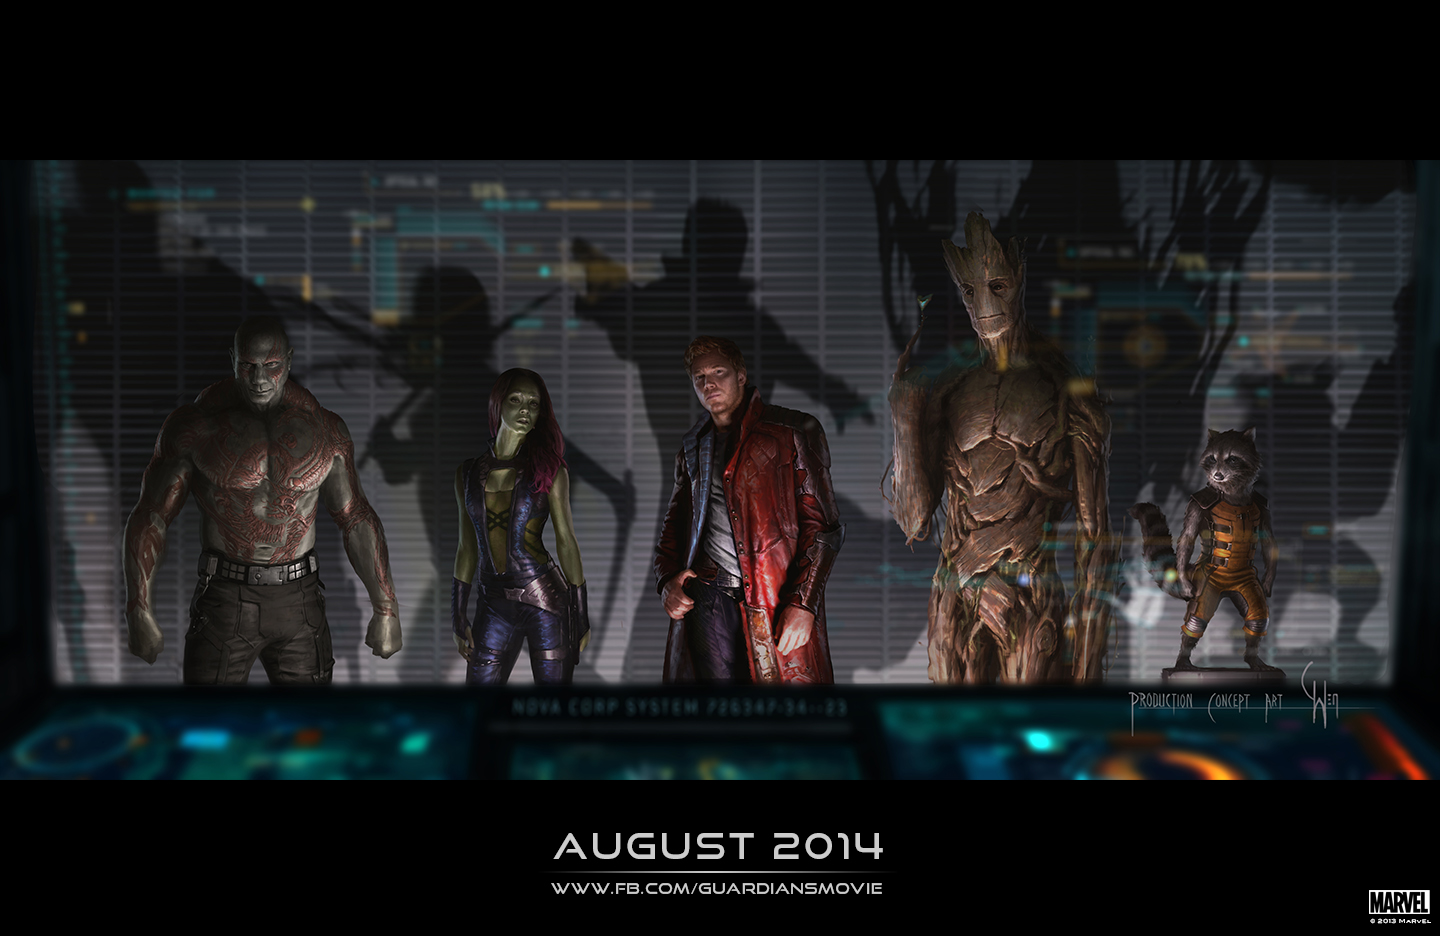 Guardians of the galaxy 2 blackfilm com read blackfilm com read